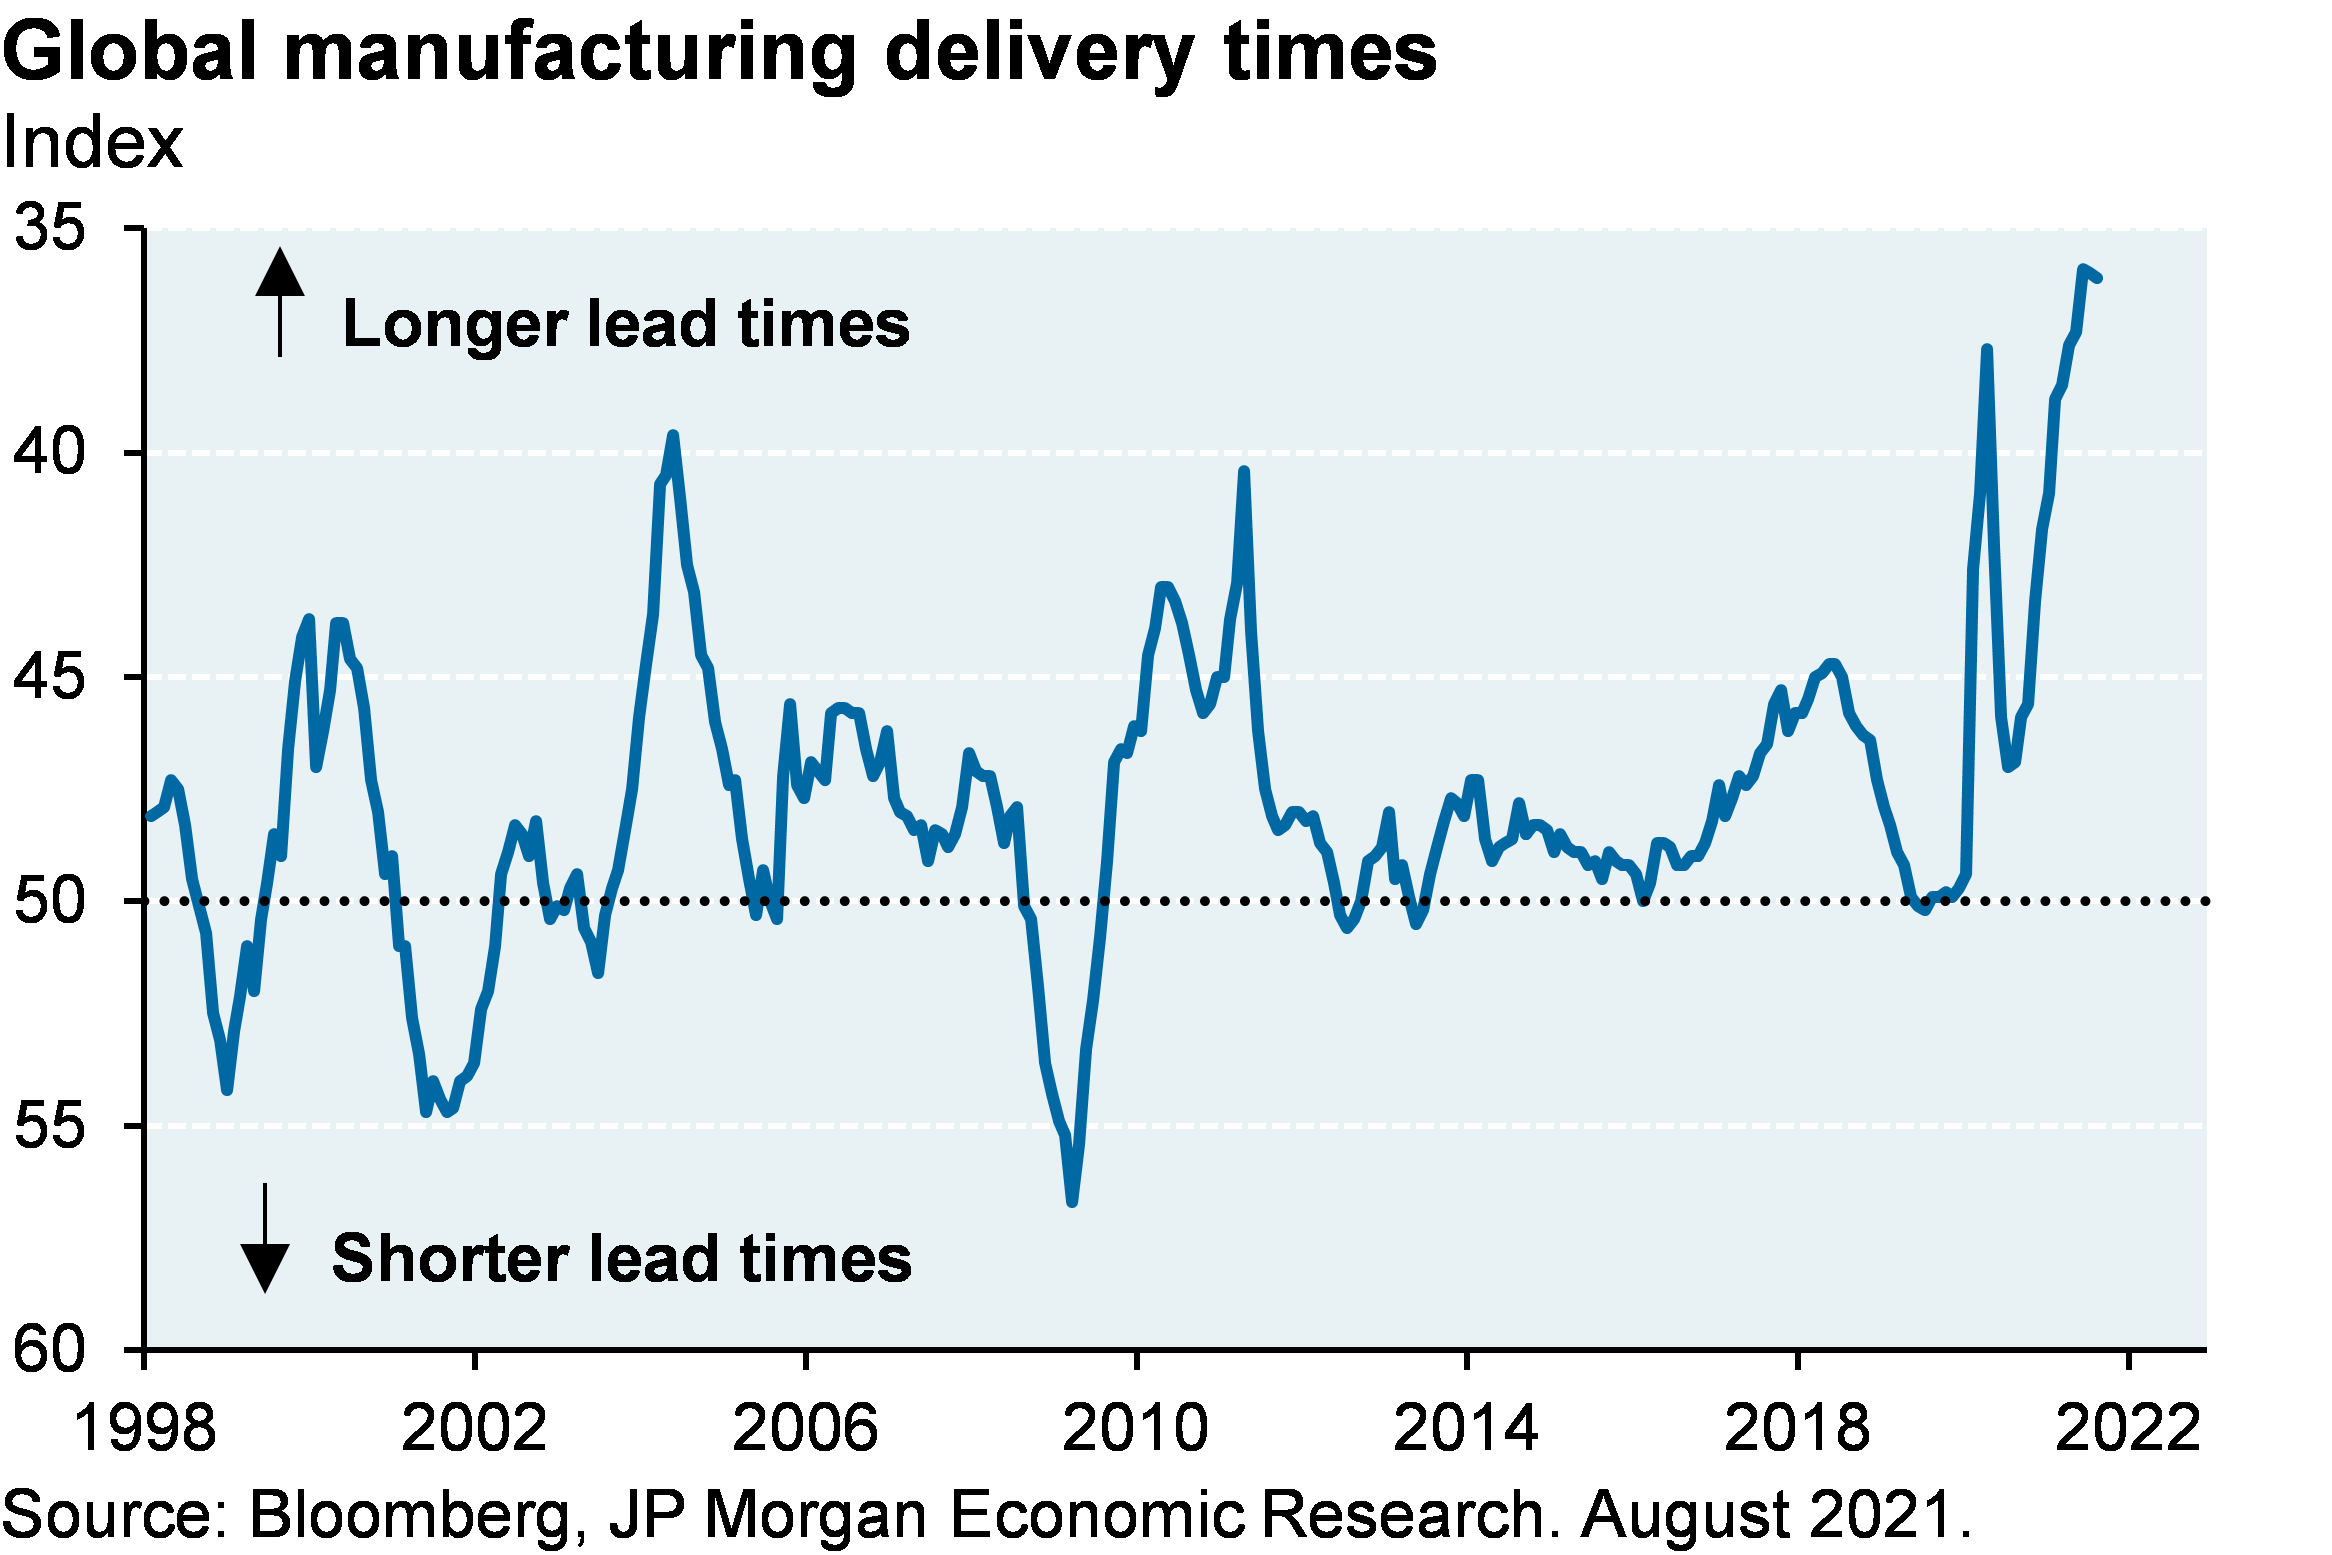 Line chart shows global manufacturing delivery times since 1998, shown as an inverted index where a lower value represents longer lead times and a higher value represents shorter lead times. Chart shows that lead times are the longest they have been in history.